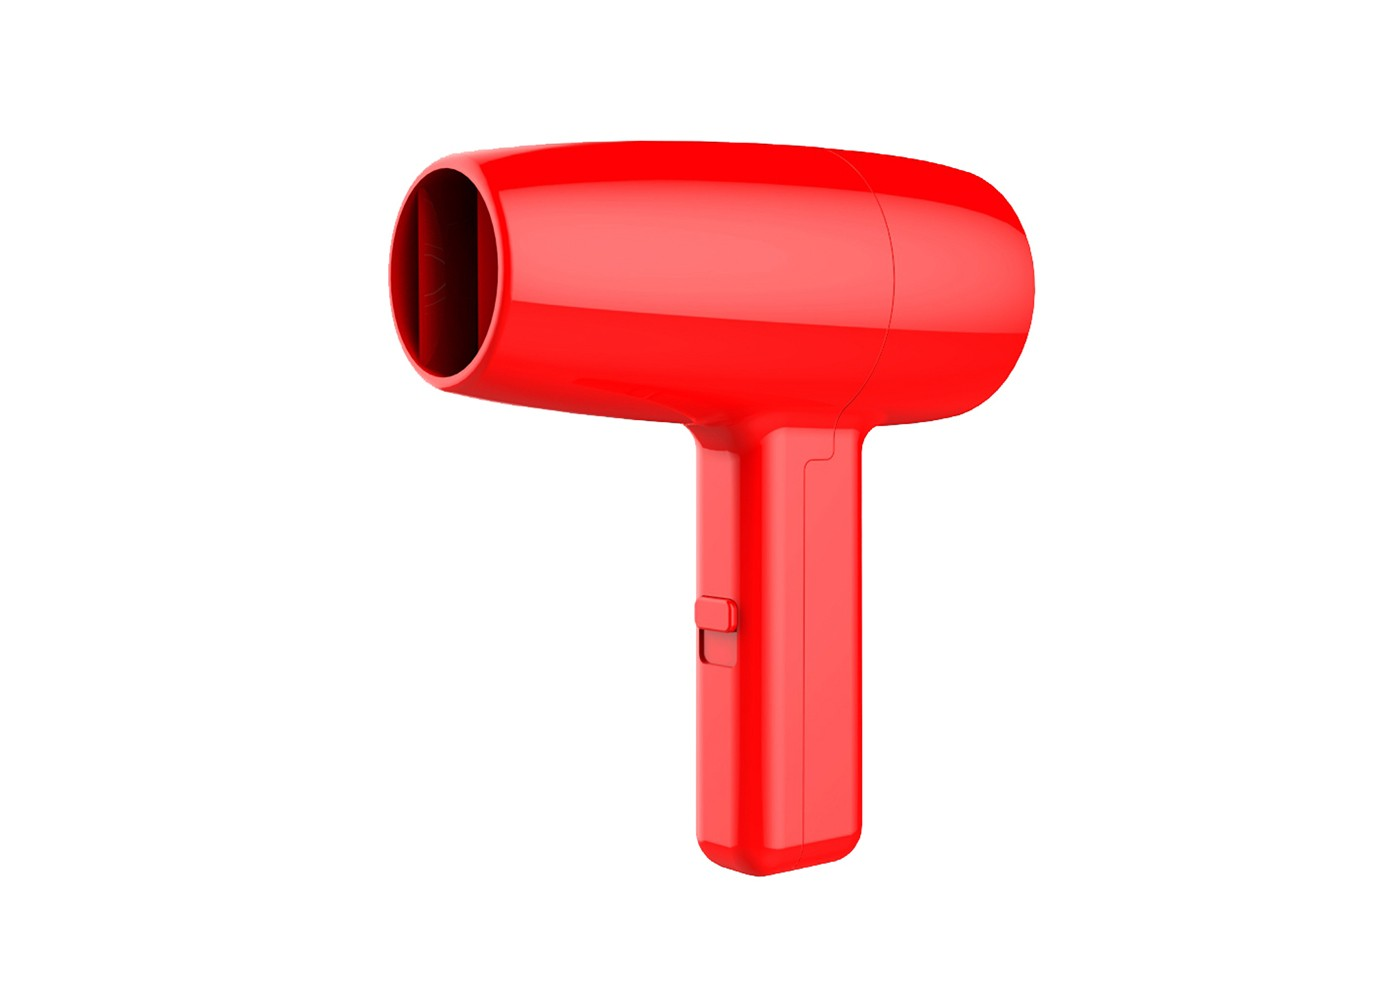 Blow Hair Dryer Replacement Parts Manufacturers, Blow Hair Dryer Replacement Parts Factory, Supply Blow Hair Dryer Replacement Parts